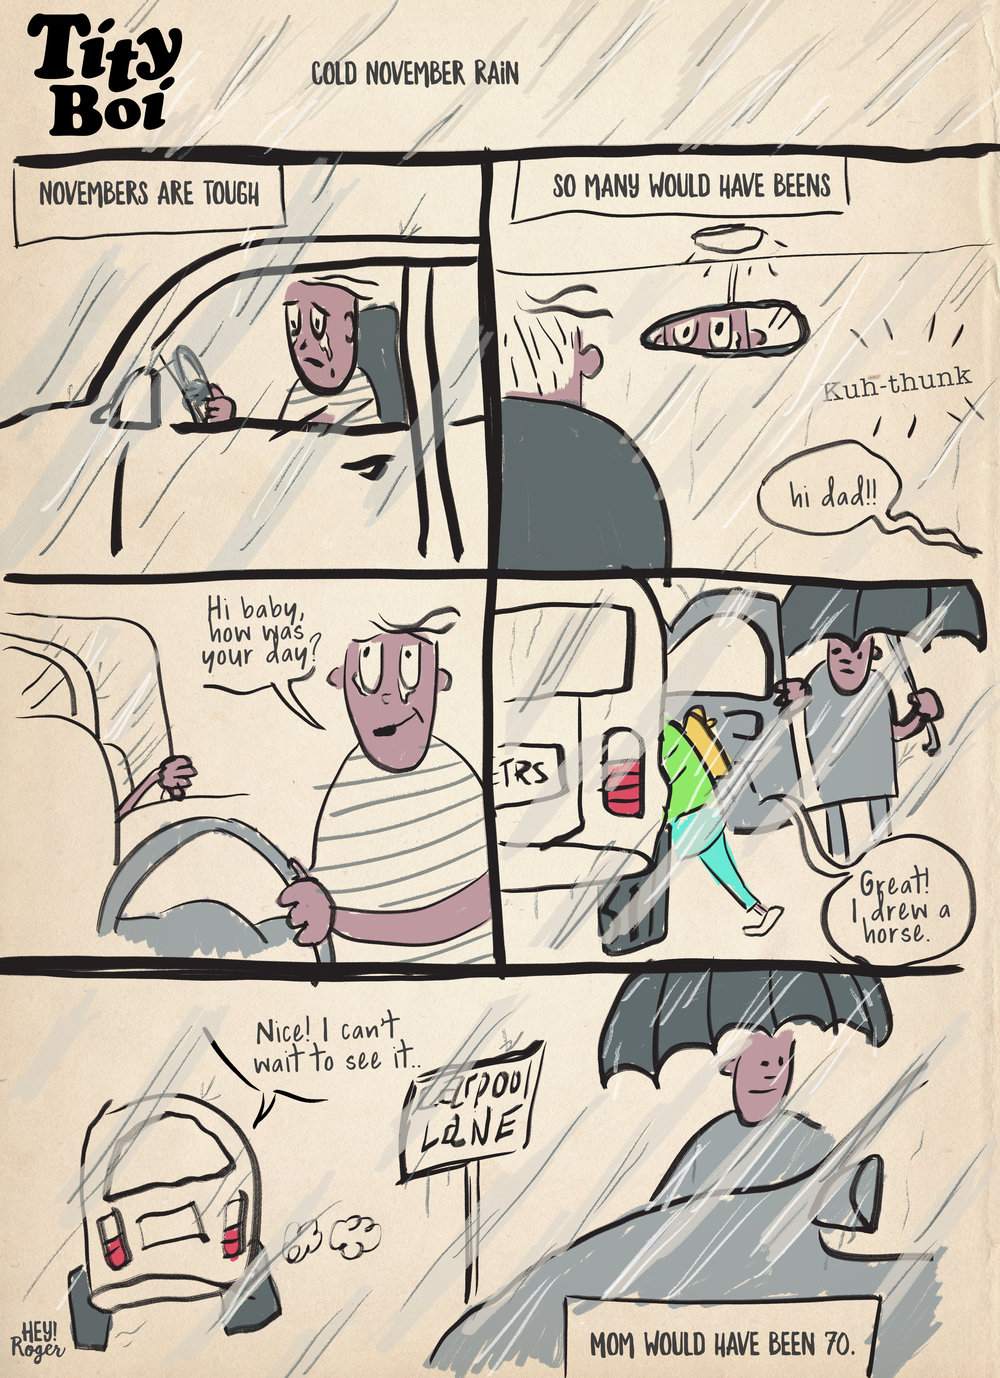 A webcomic about mourning the loss of a parent and raising children.